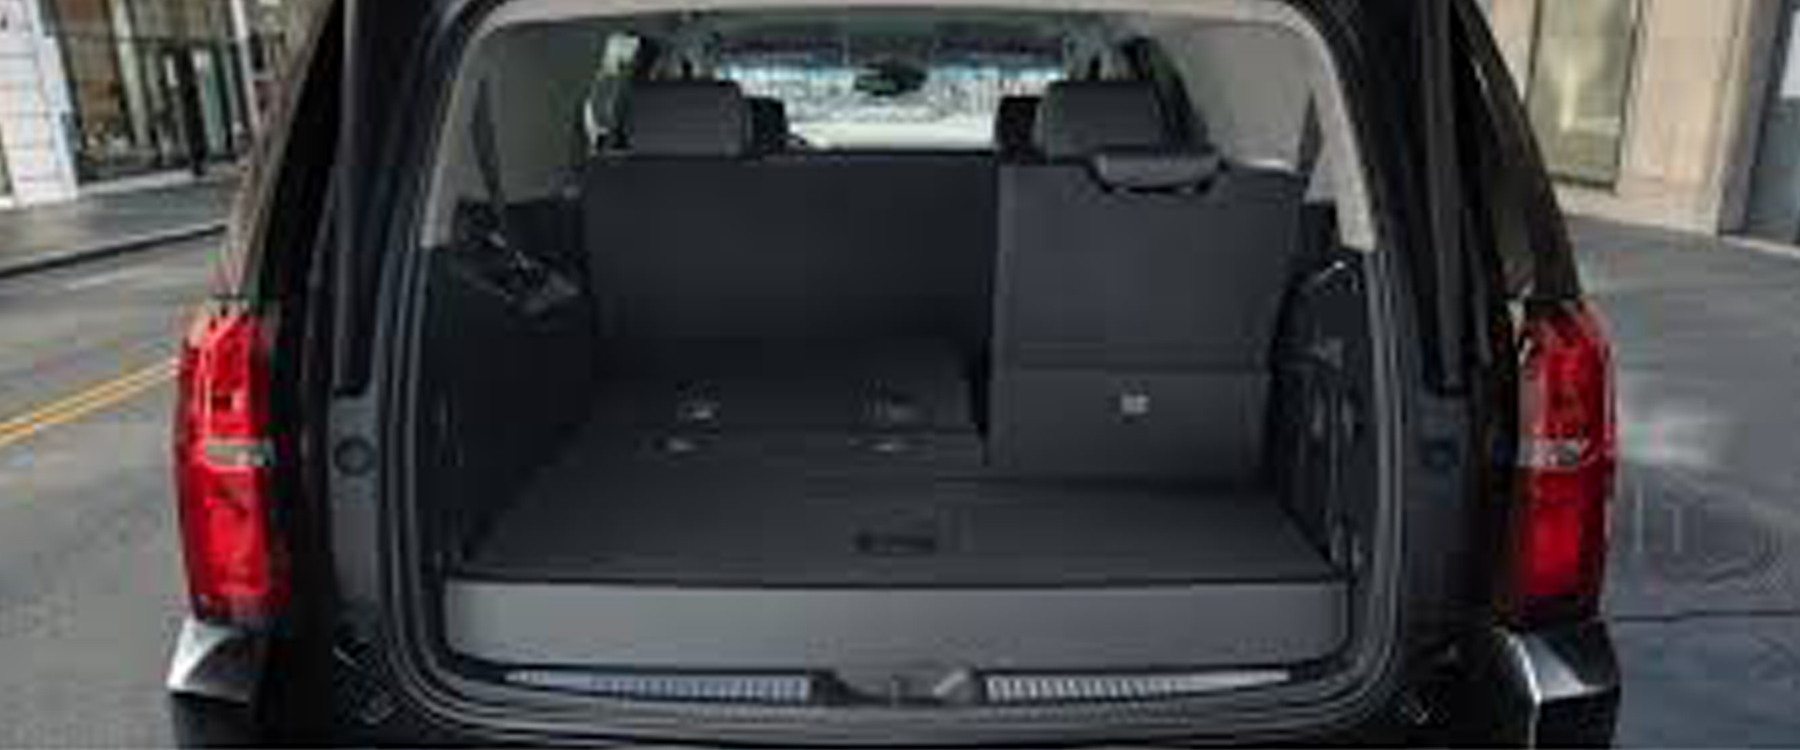 Rear trunk view of Chevy Suburban SUV rental in Miami